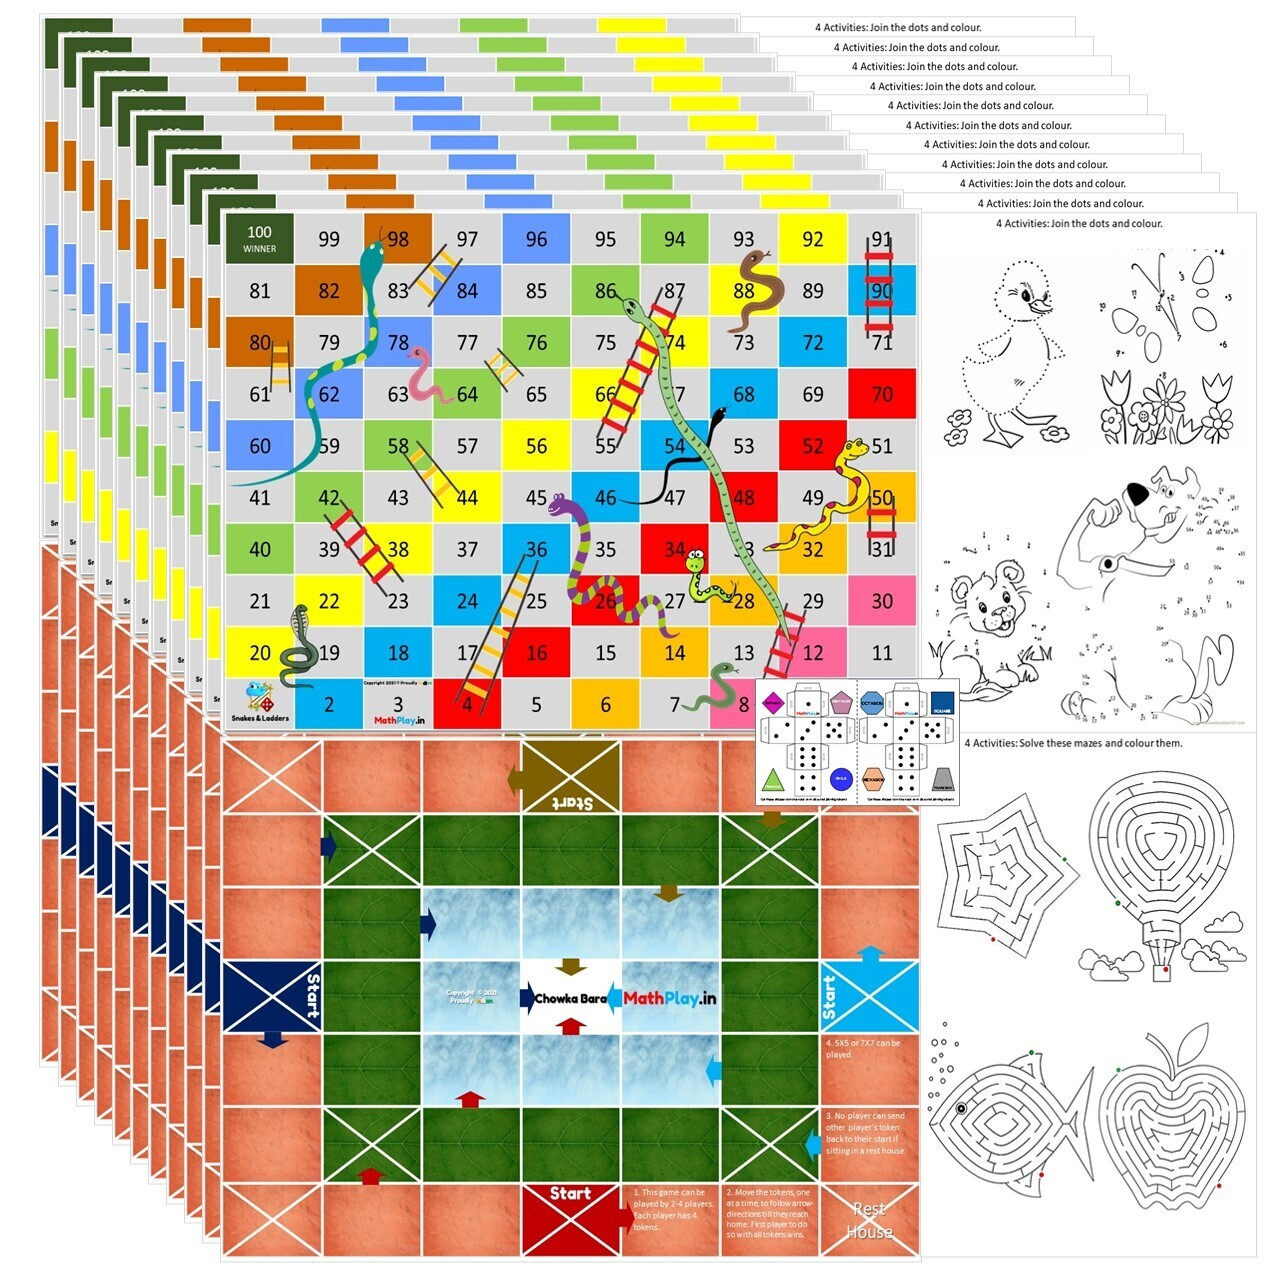 MathPlay Snakes & Ladders | Chowka Bara Birthday Return Gift for Kids (Pack of 10) - 12 in 1 Activities - Educational Games, Colouring, Dice Making Activities